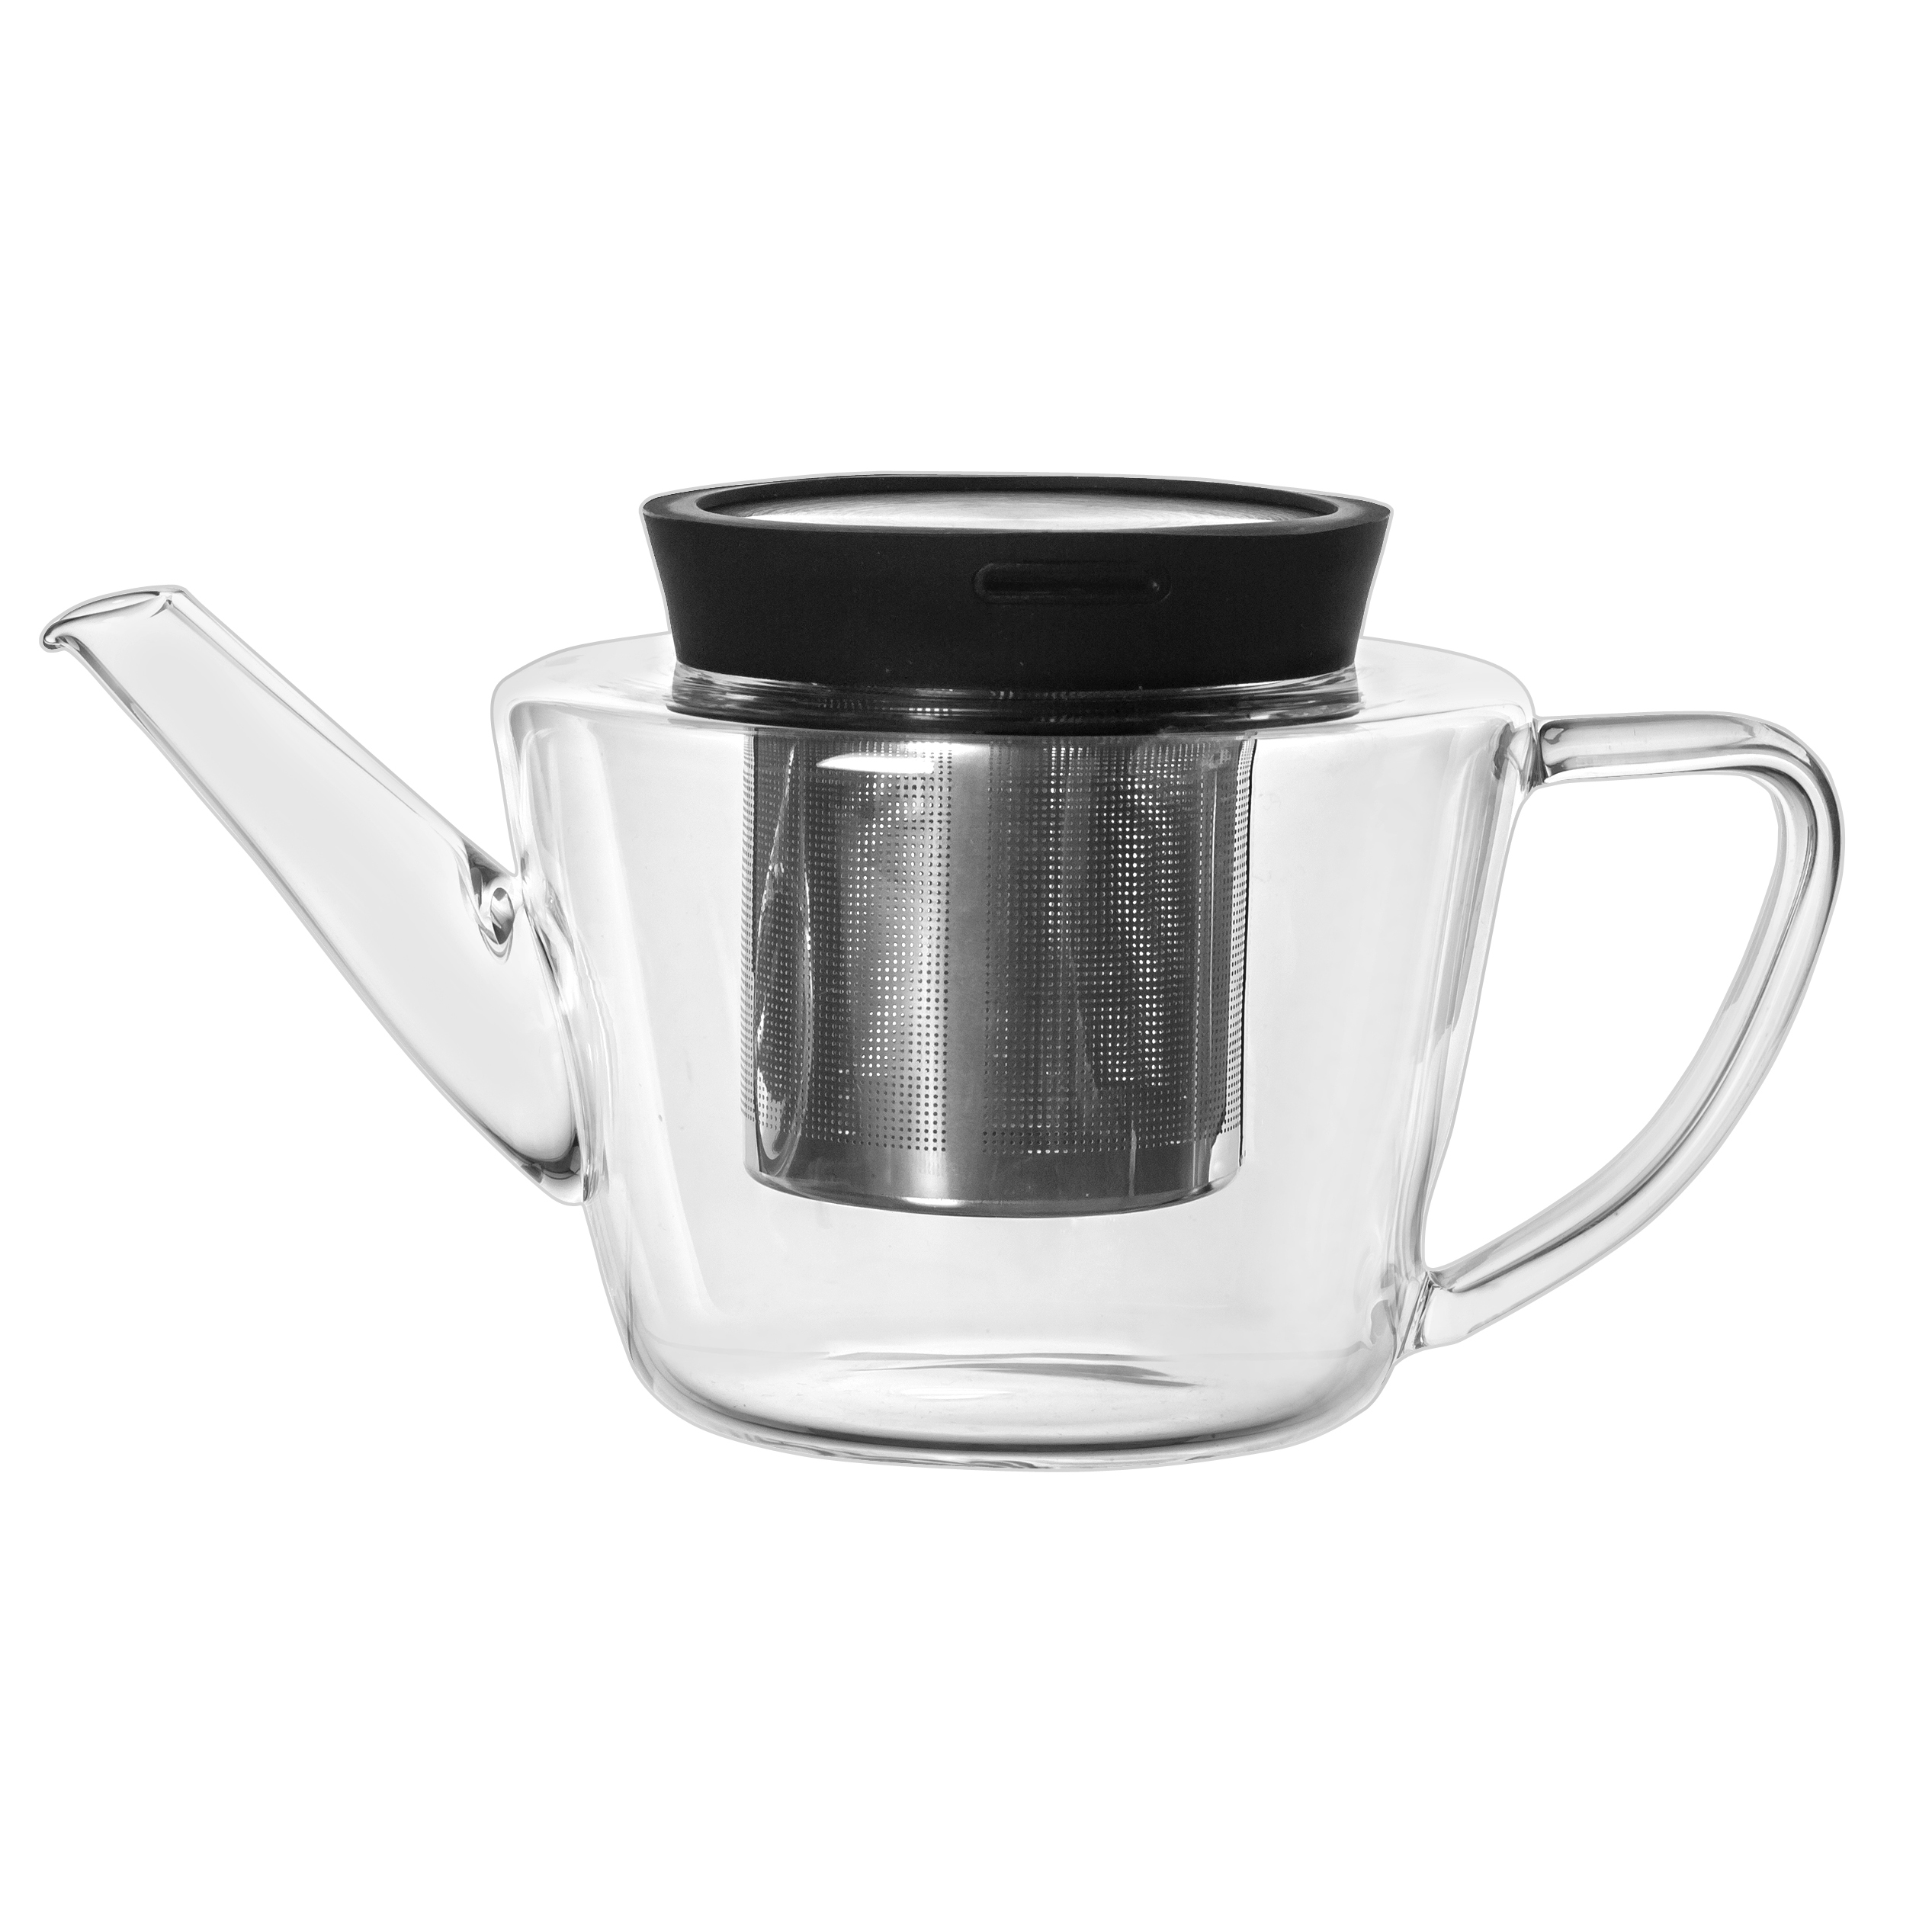 Libbey Glass VS81100 coffee pot/teapot, glass